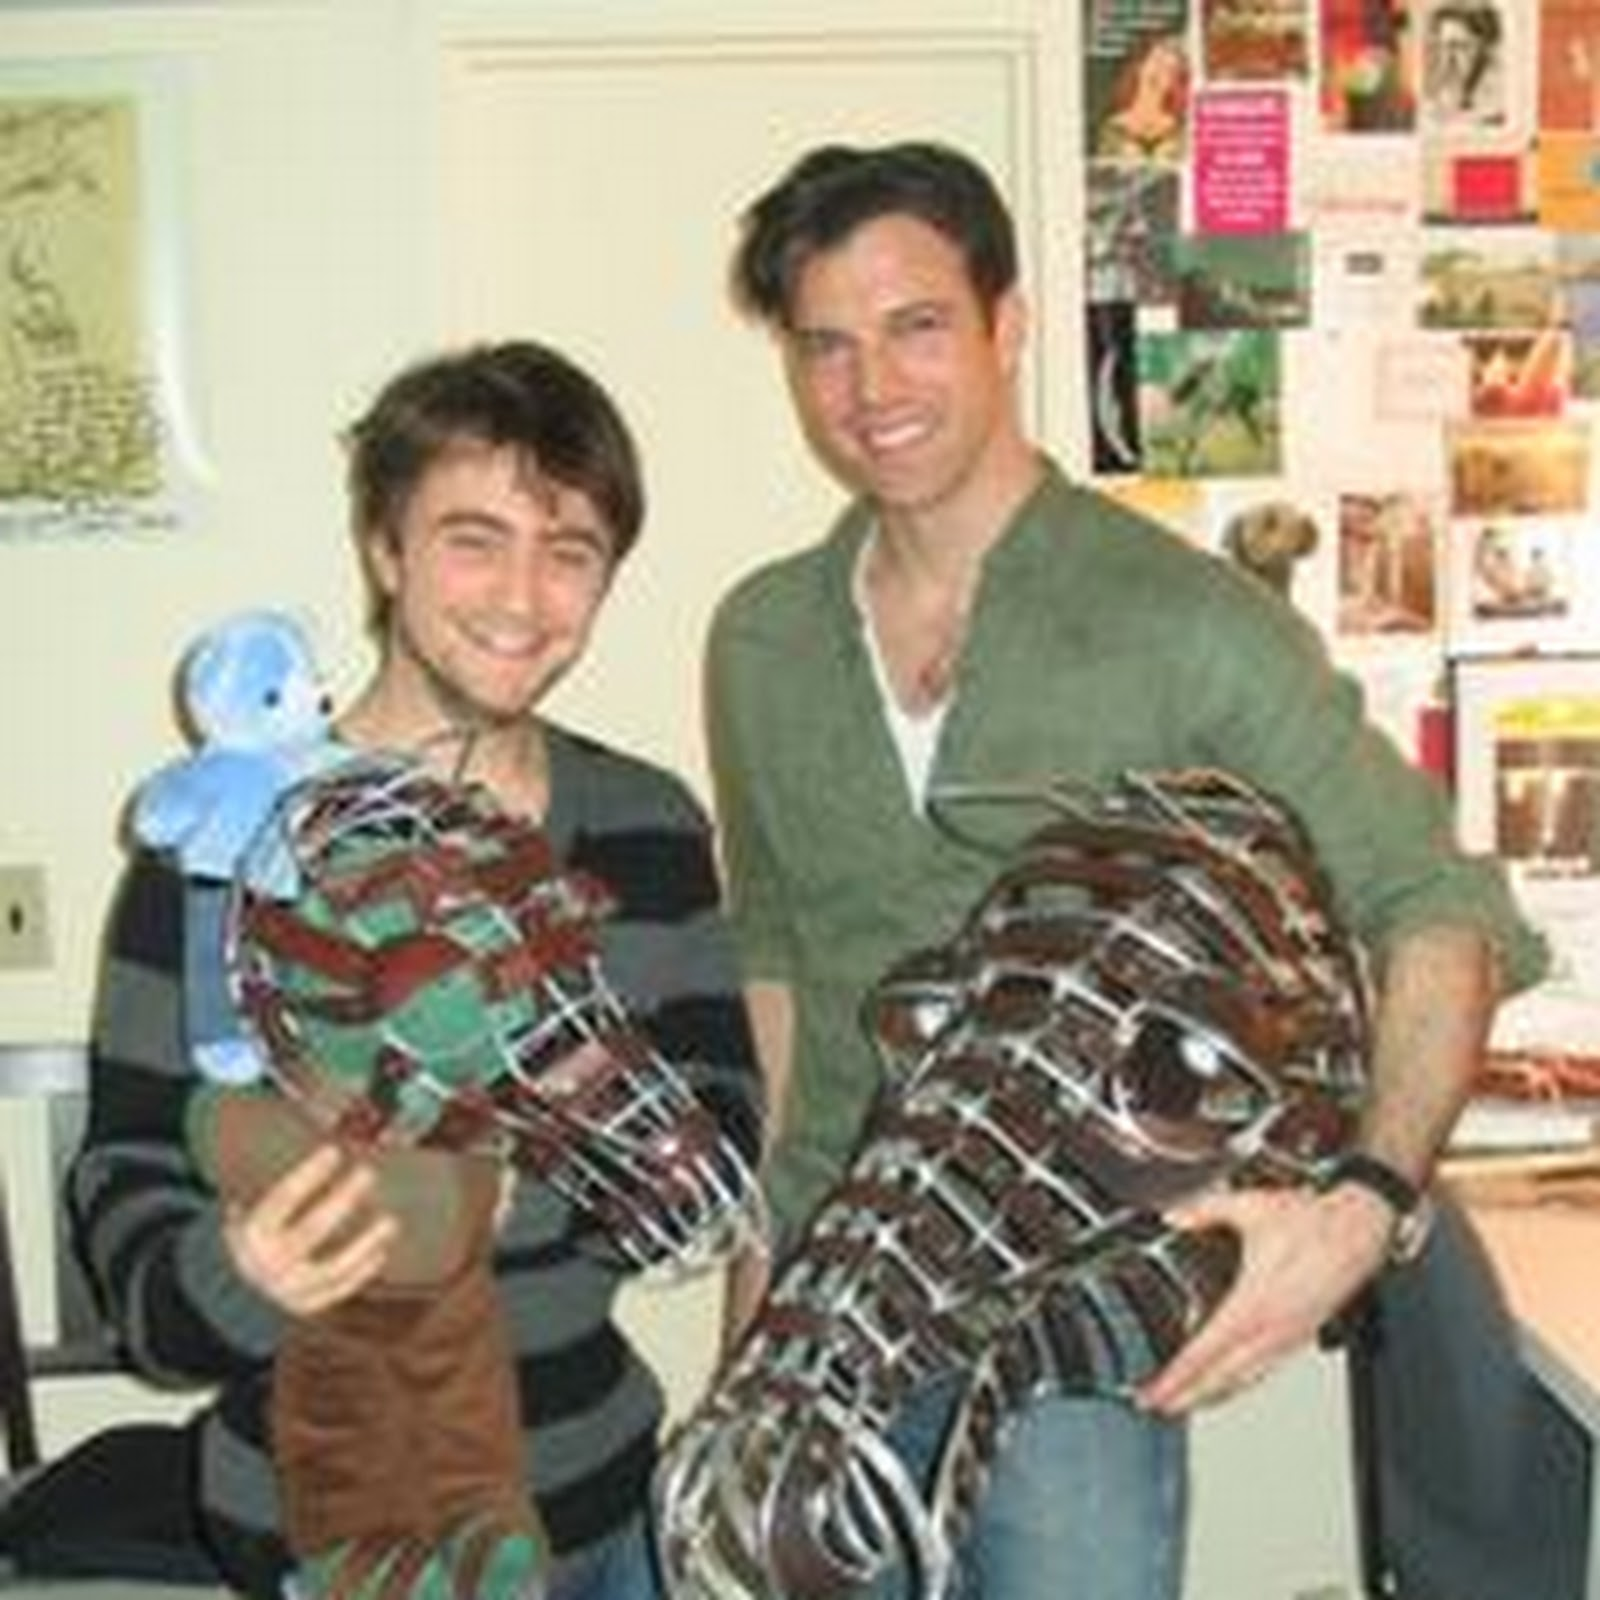 Updated: Broadway Bears auction